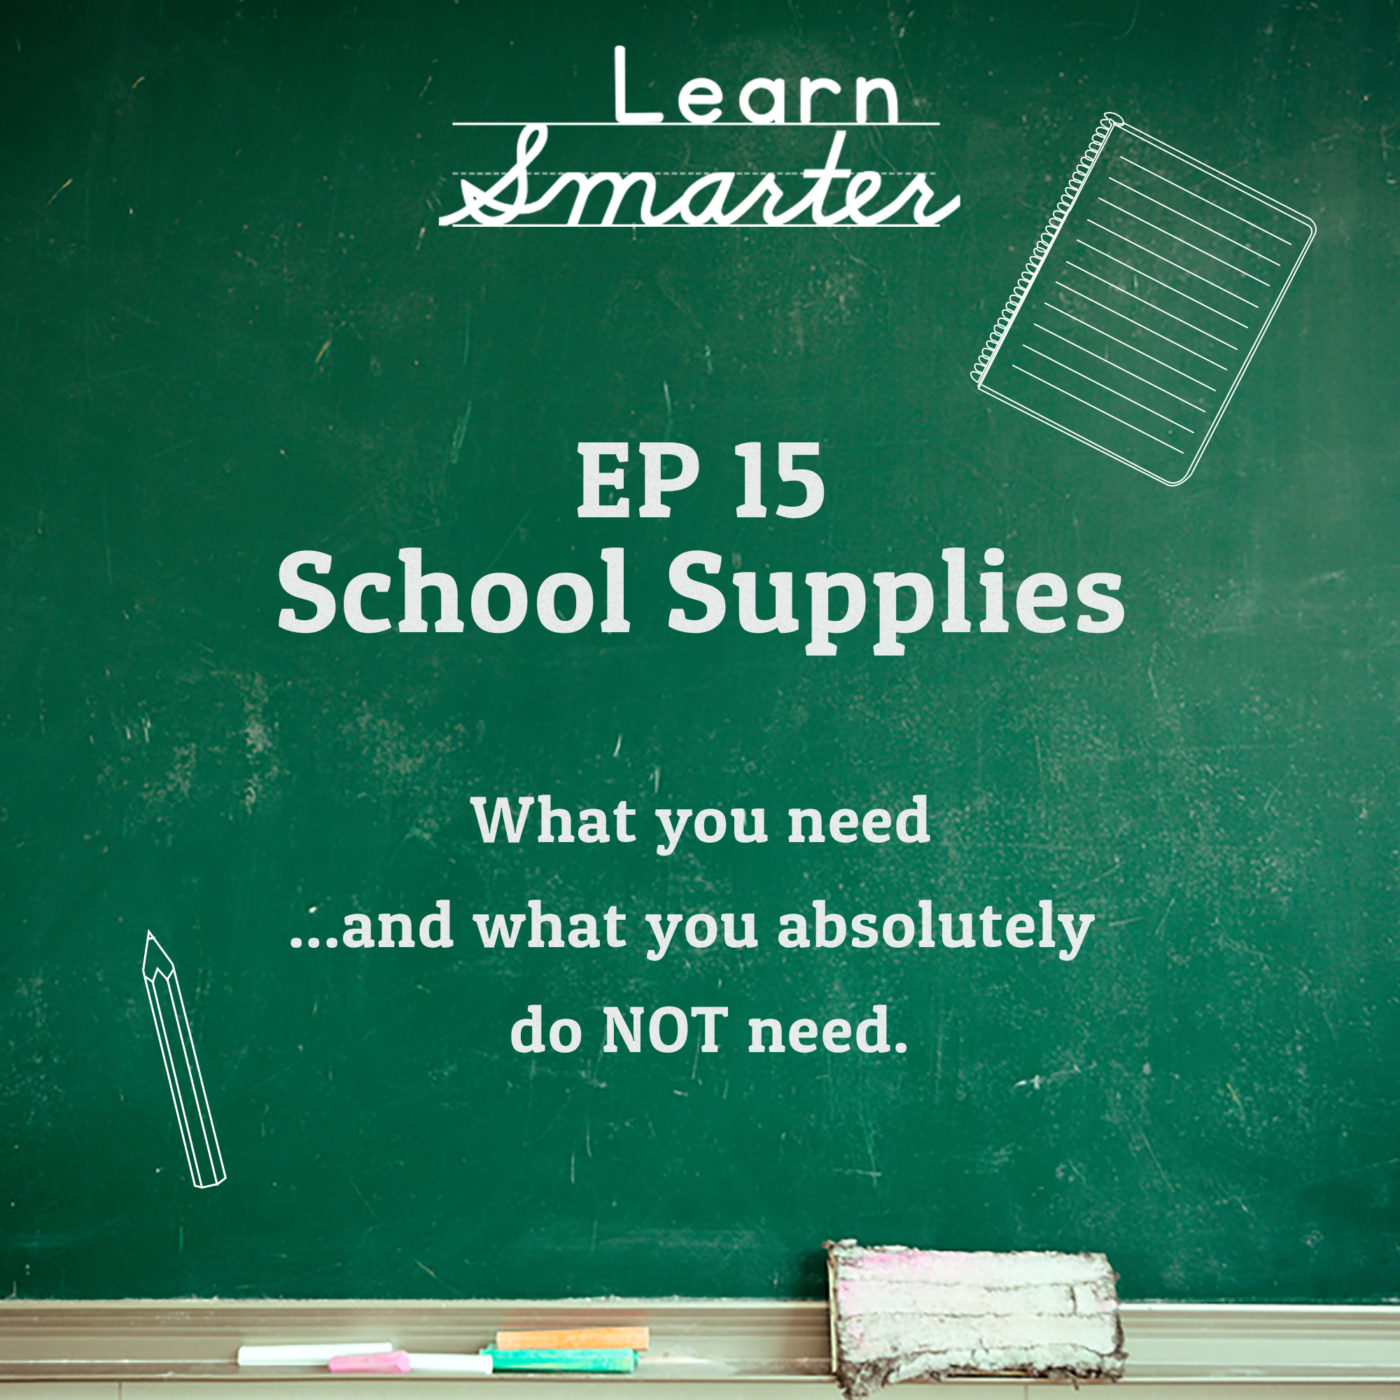 Ep 15: School Supplies (What you need and what you ABSOLUTELY don't need)